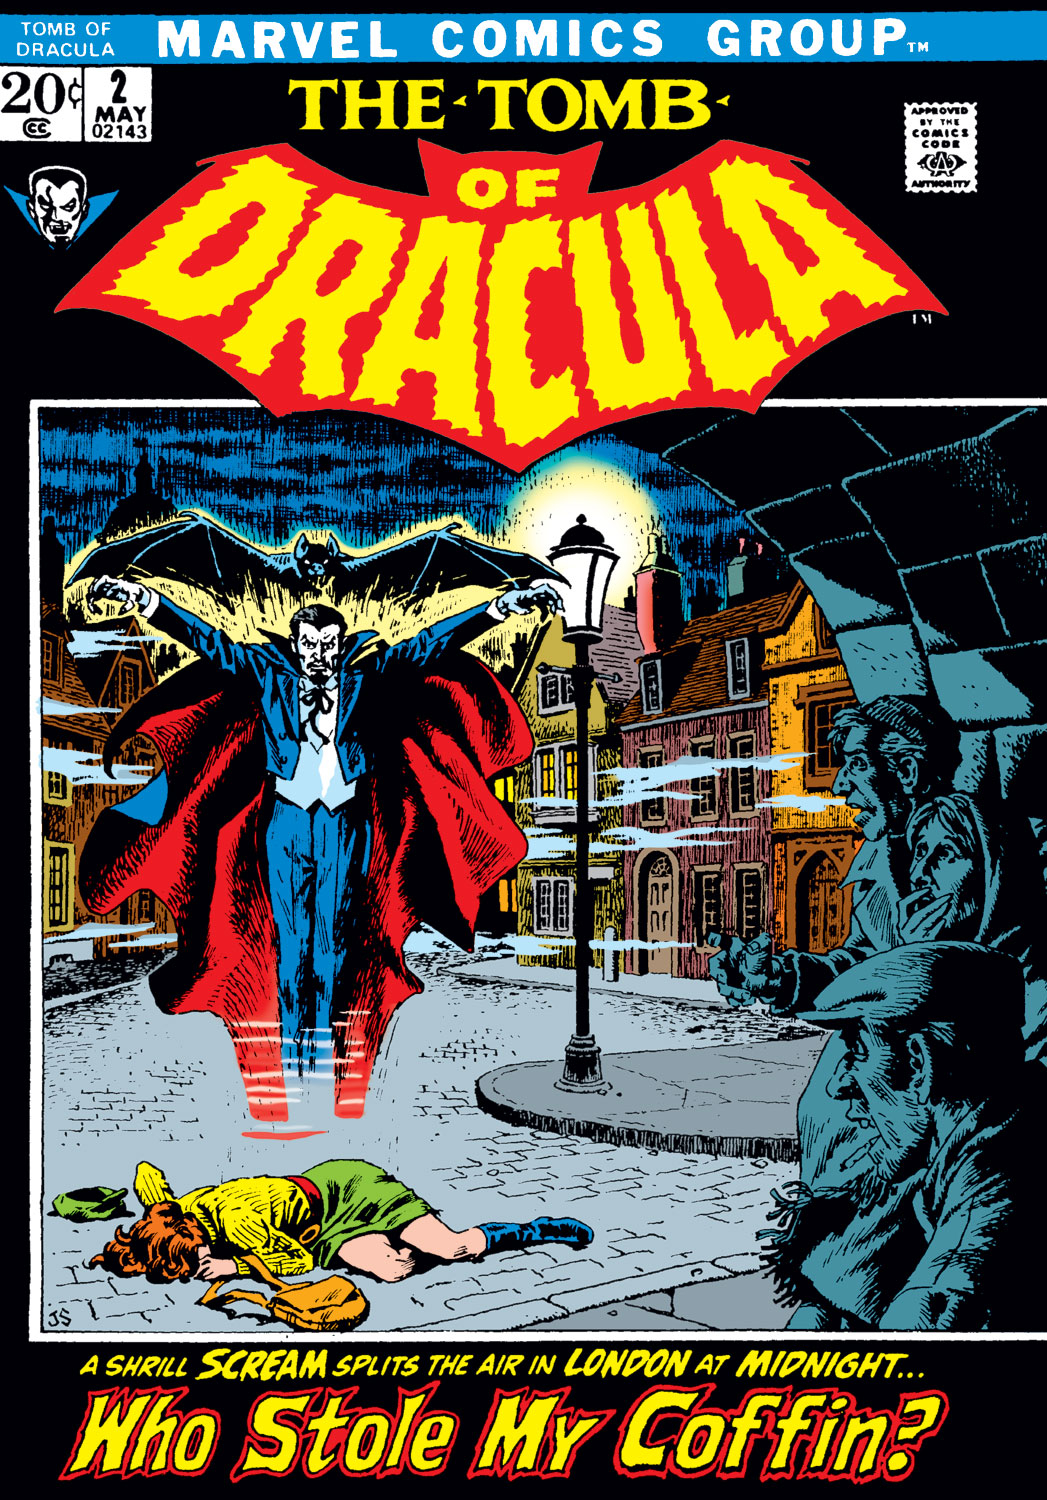 Tomb of Dracula (1972) #2, cover by John Severin.